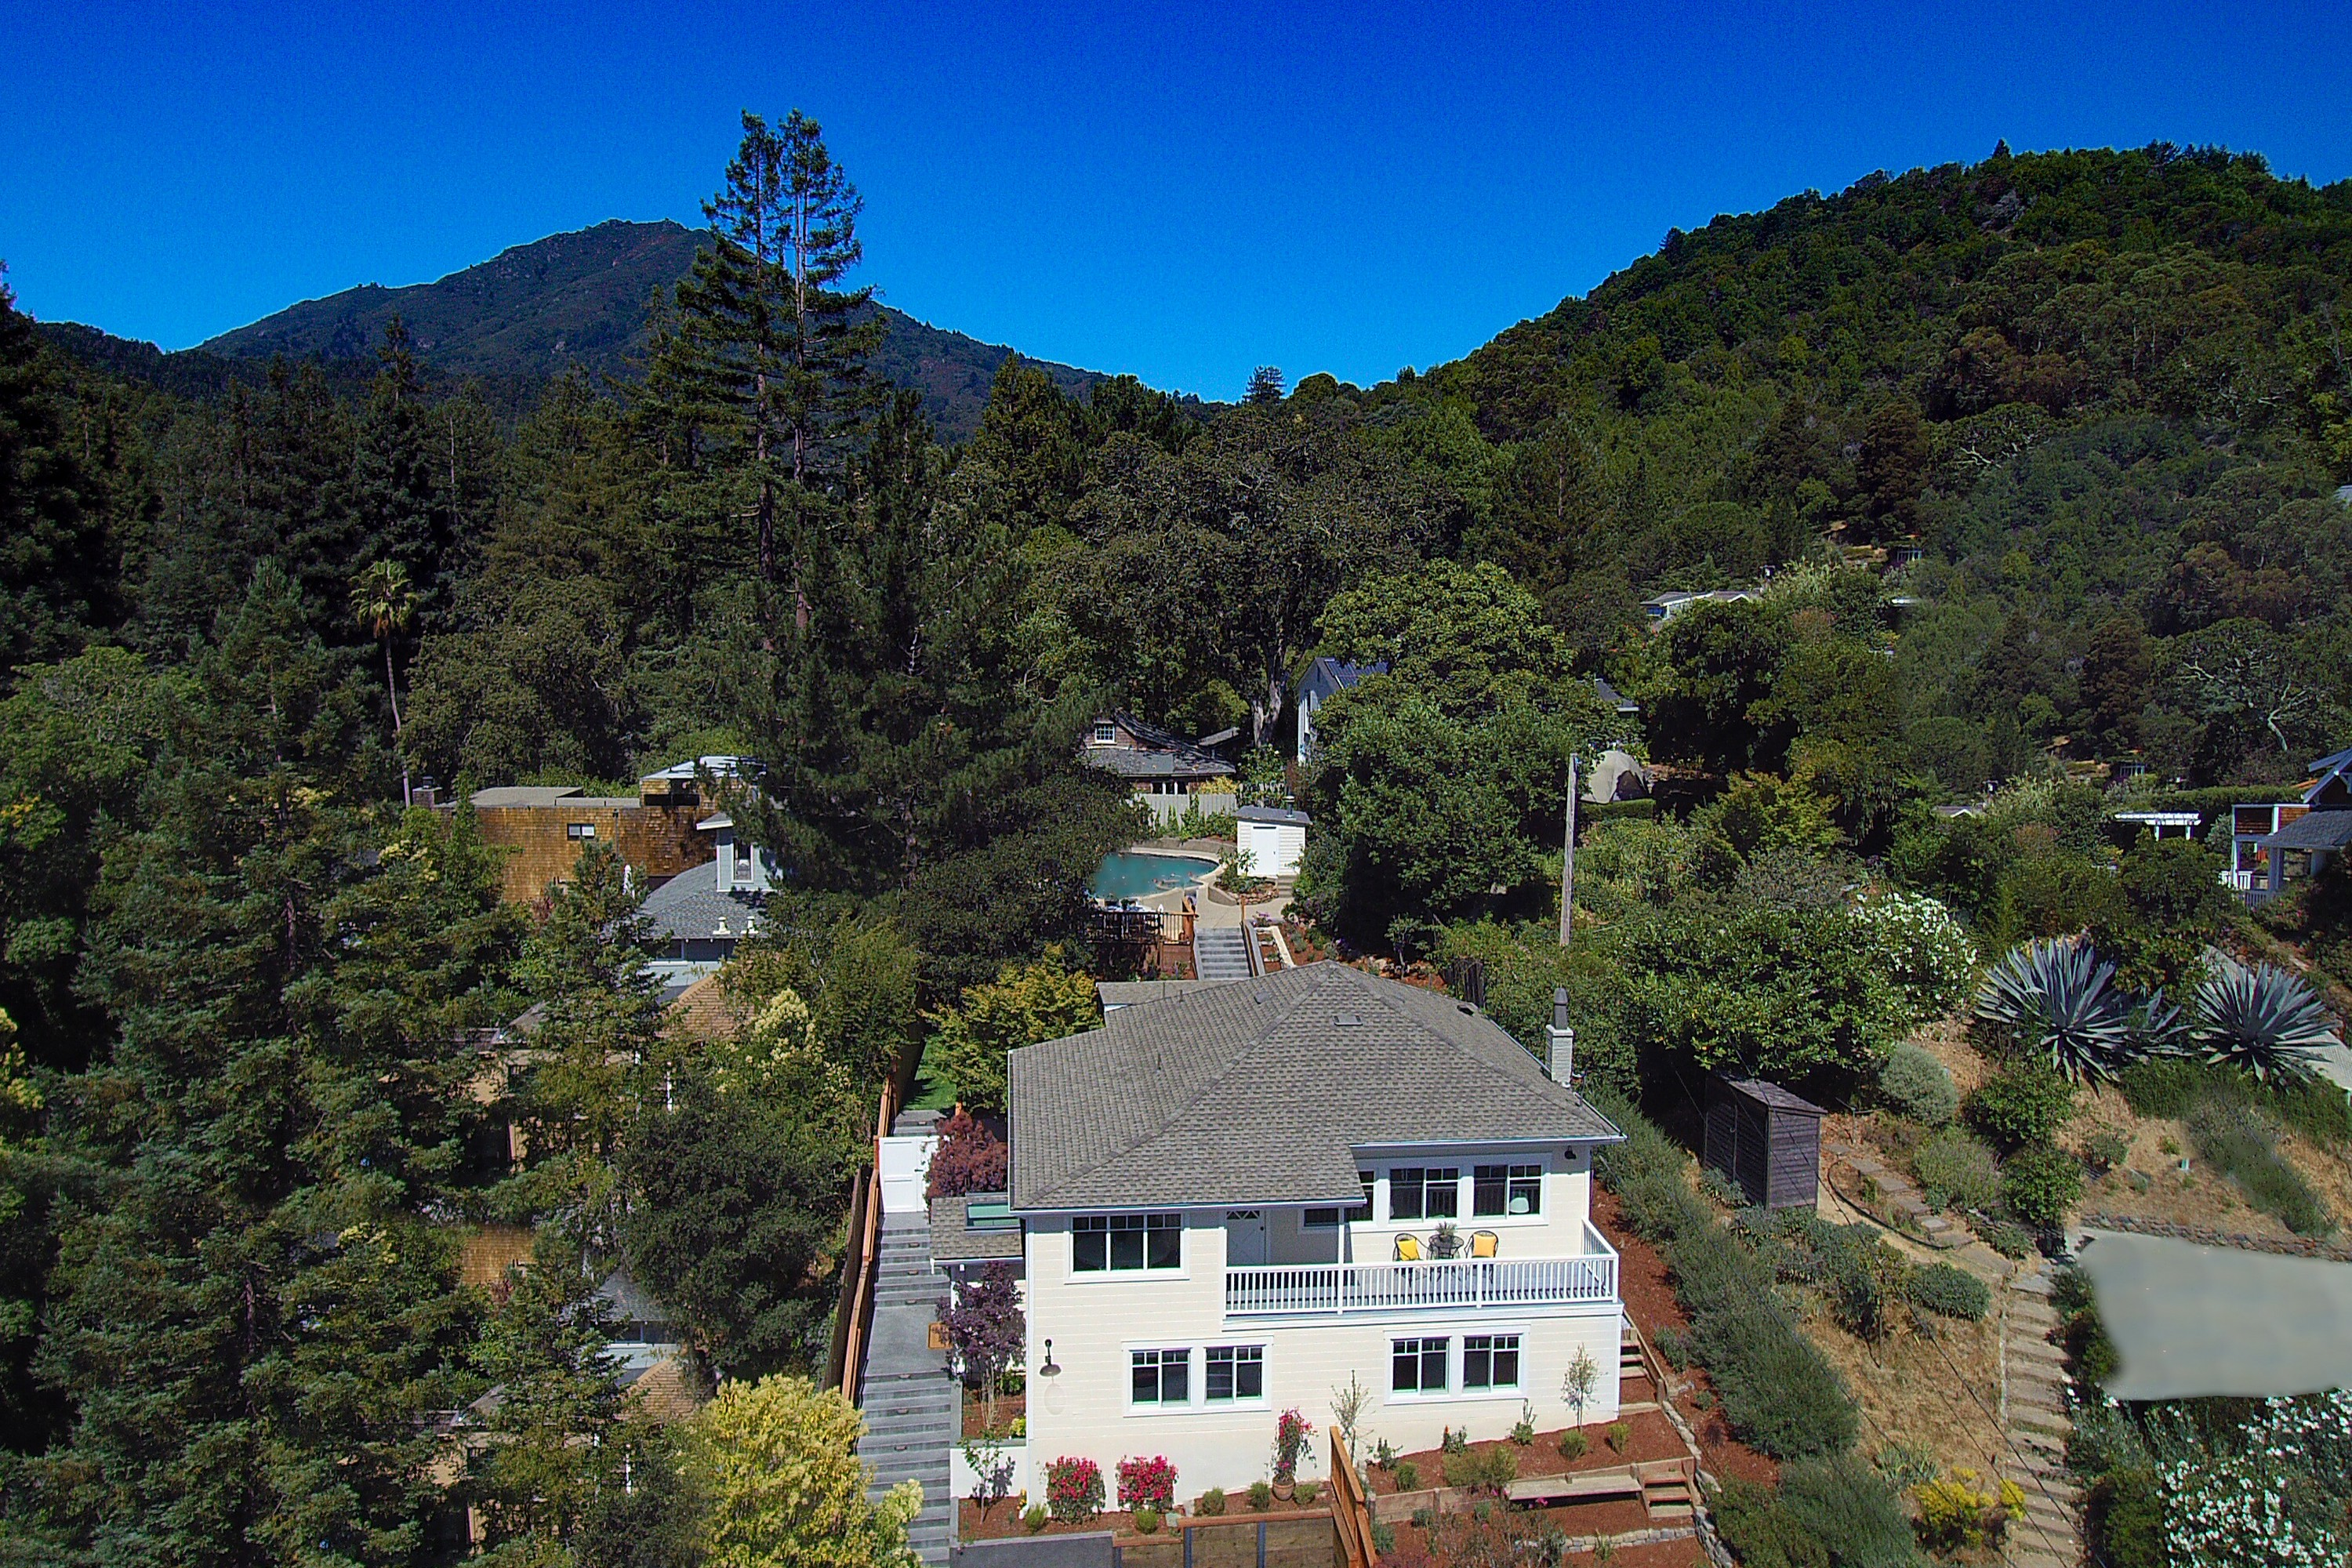 Single Family Home for Sale at Luxury, Lifestyle and Location in Larkspur's Madrone Canyon 15 Orange Avenue Larkspur, California, 94939 United States